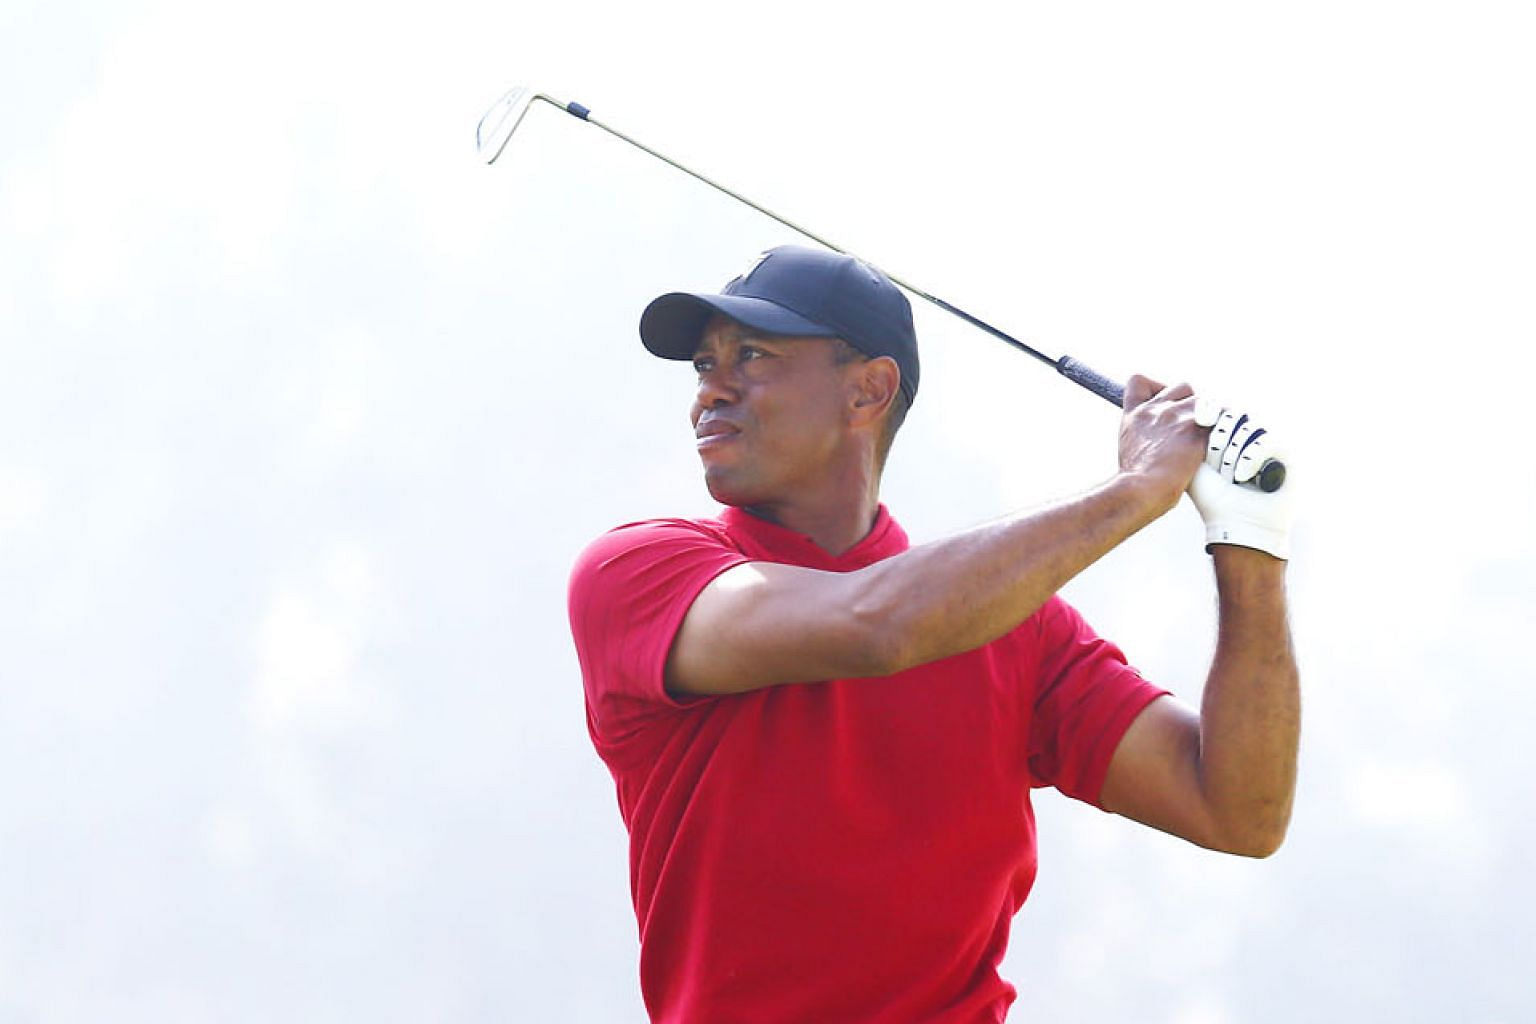 Tiger Woods not at his best in the final round of the Genesis Invitational in California in February, when he was troubled by his erratic back. But the postponement of the Masters till November means he is likely to be in better shape for his title d